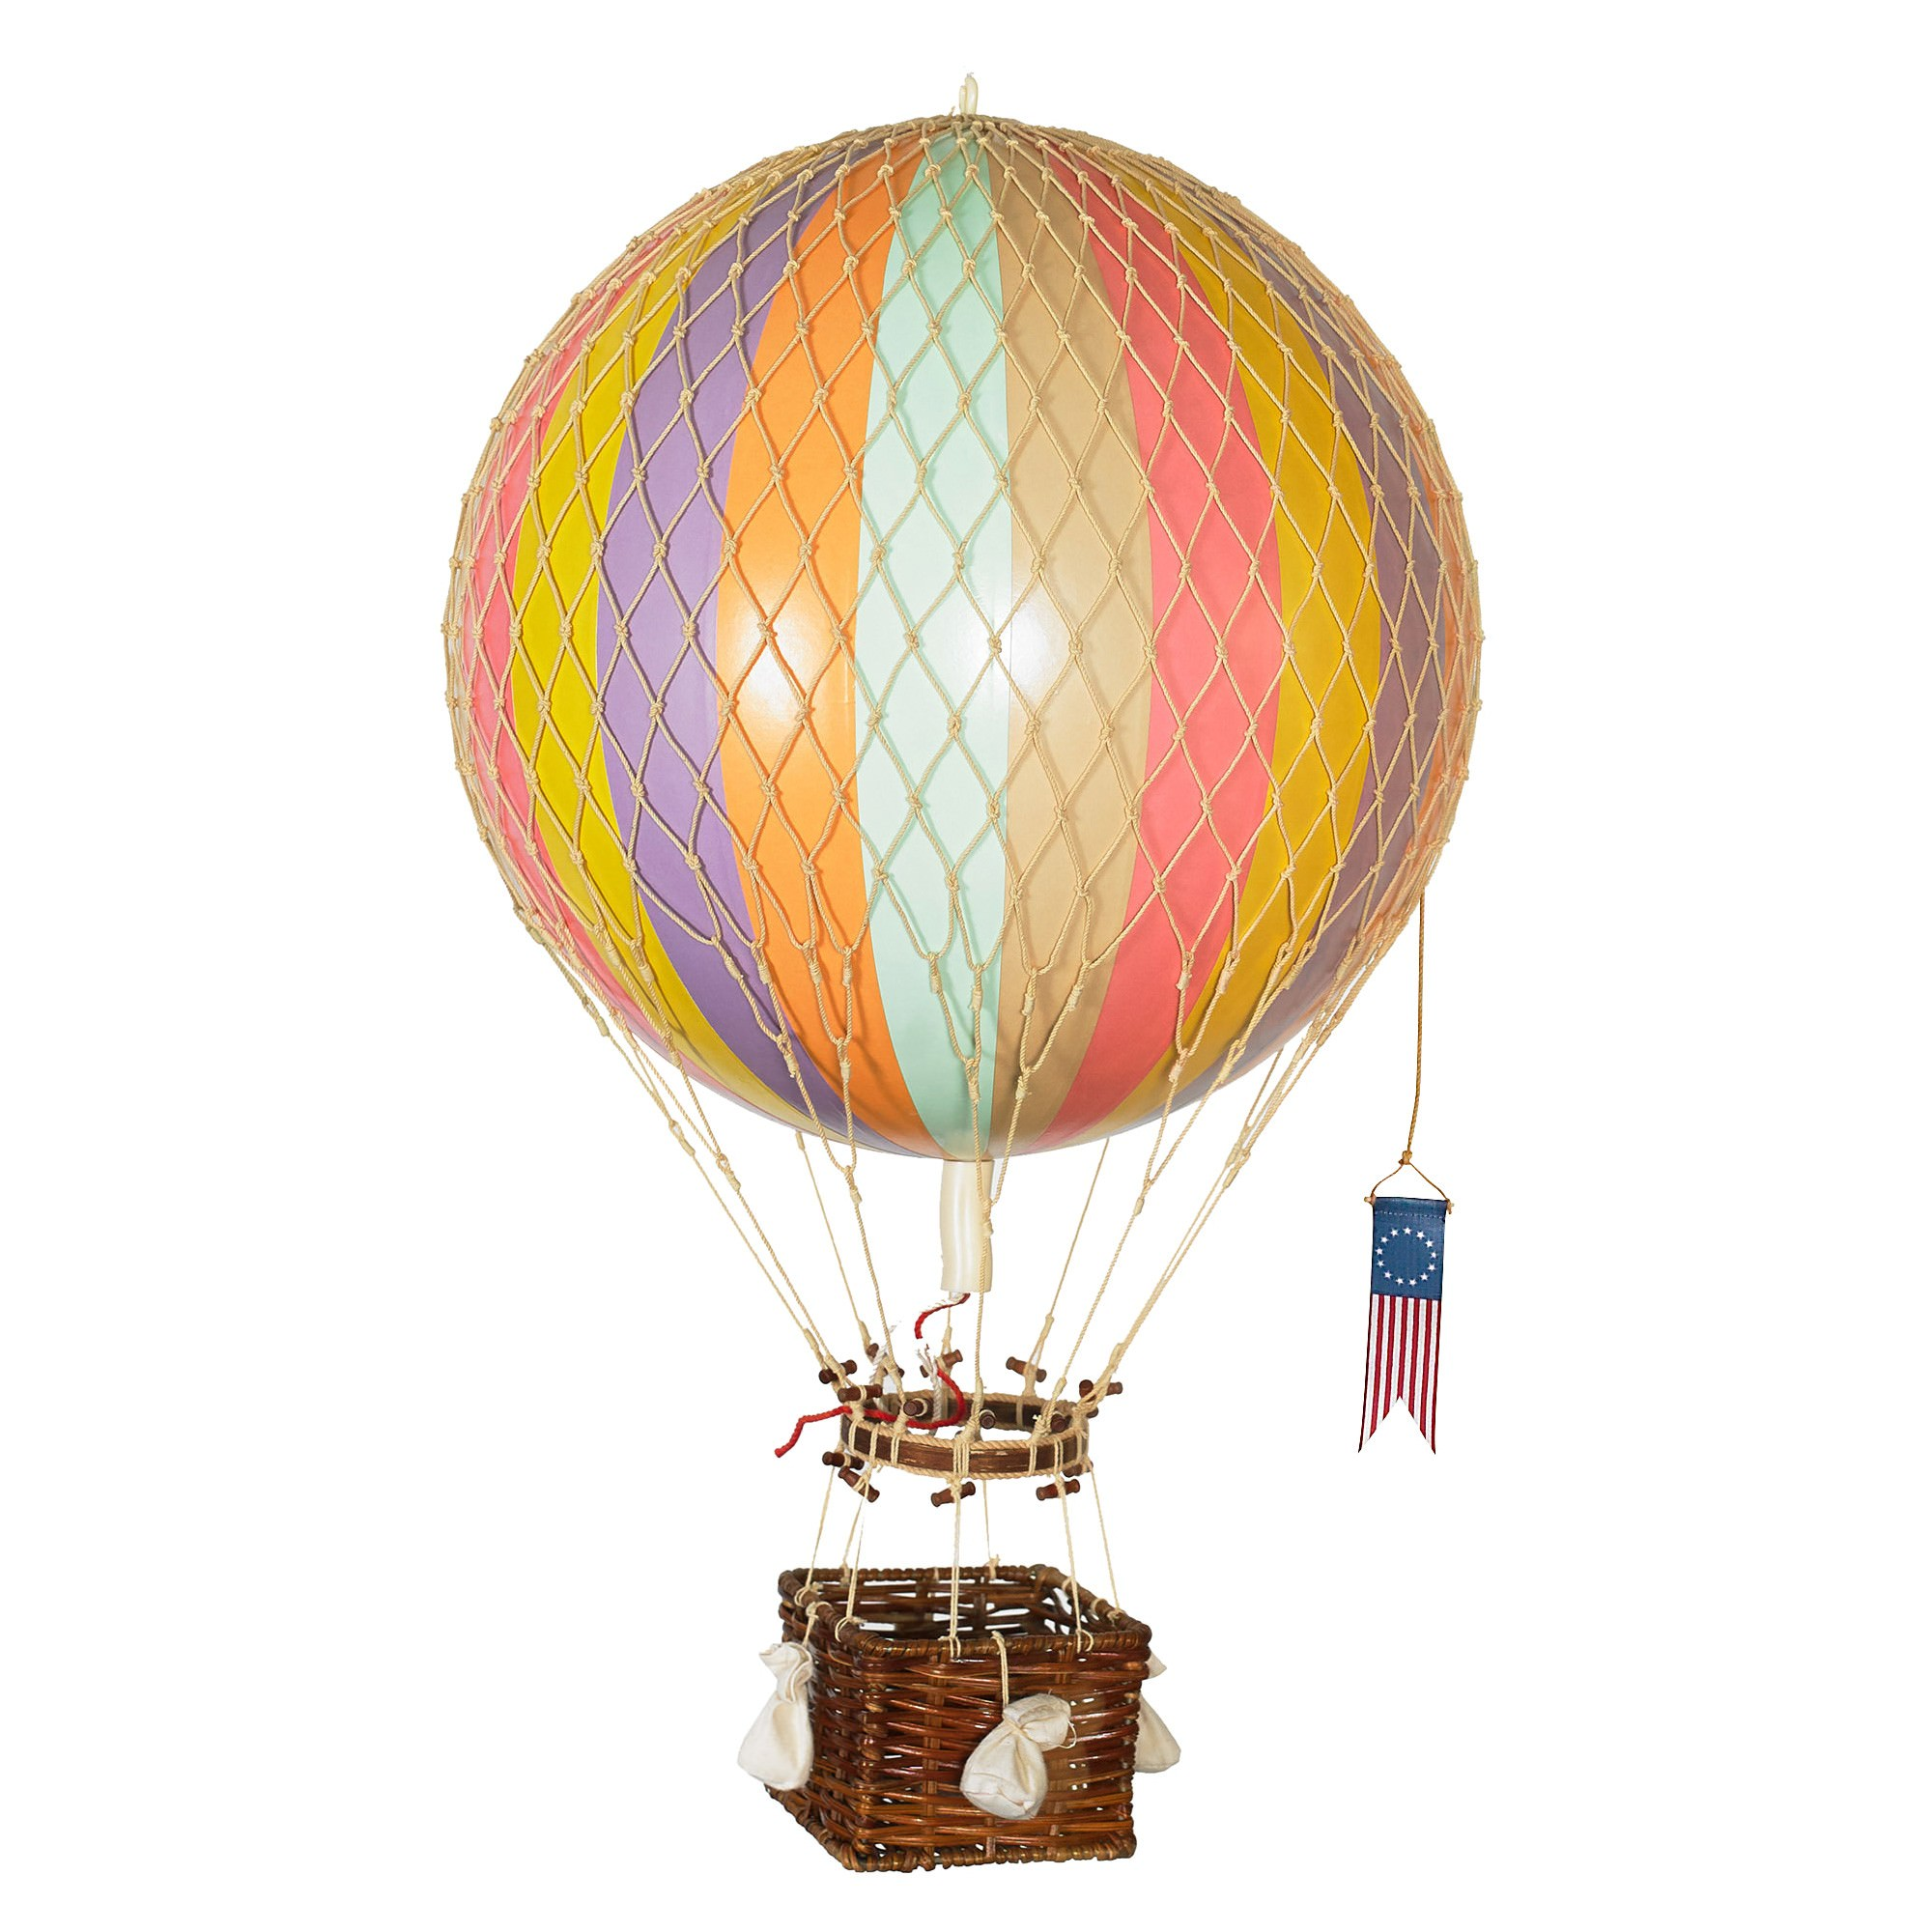 Royal Aero Hot Air Balloon Model, Pastel Rainbow